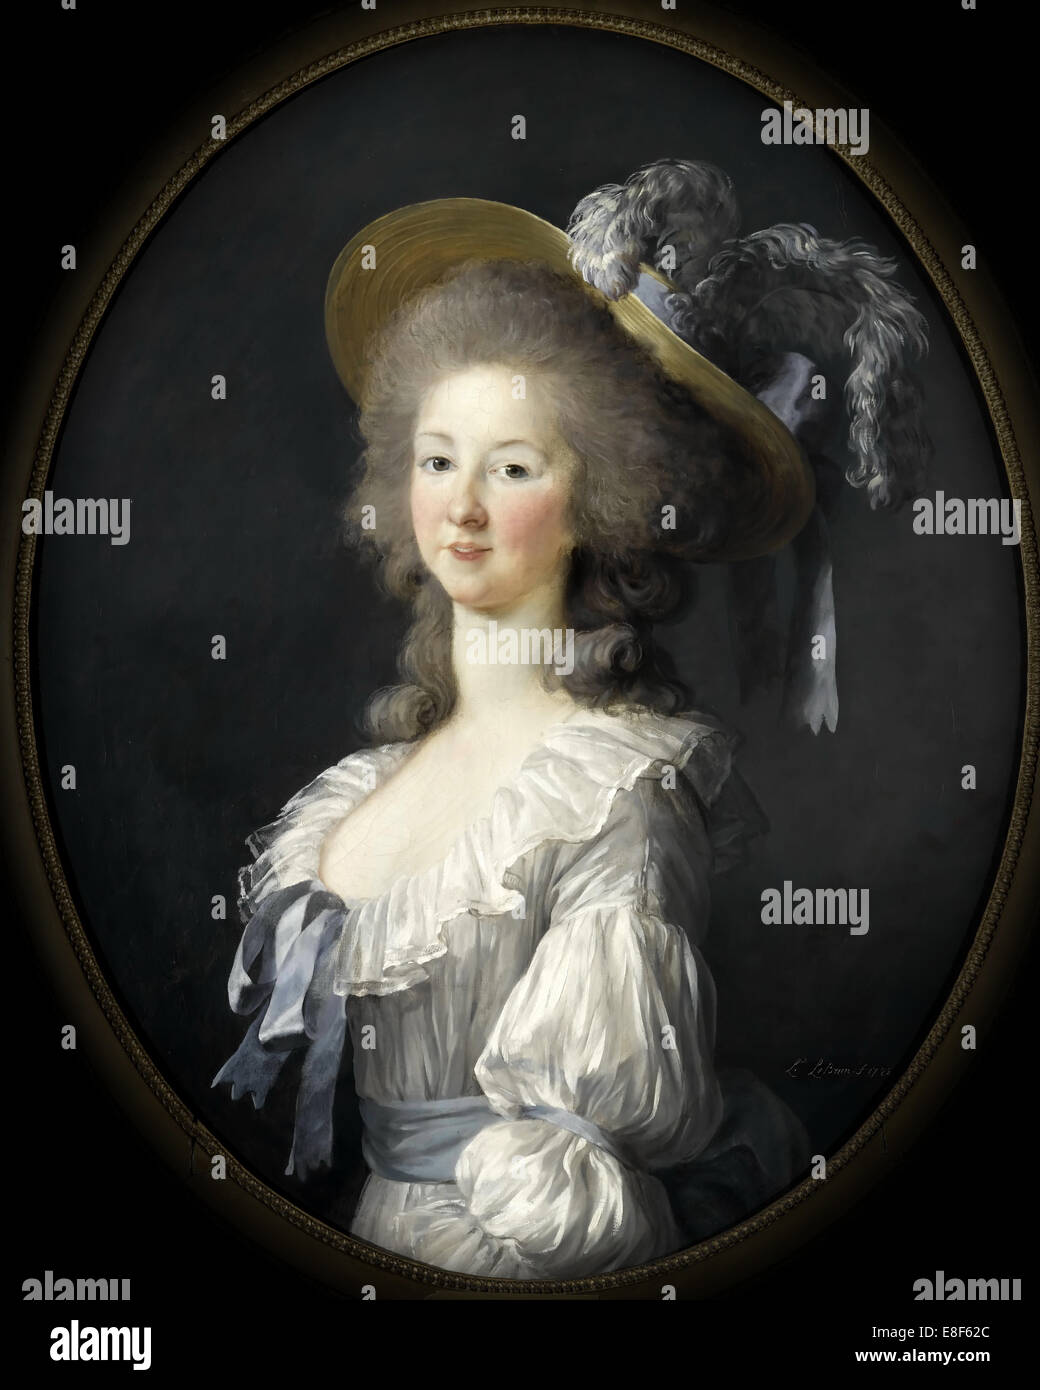 Portrait of Marie Louise of Savoy (1749-1792), Princess of Lamballe. Artist: Vigée-Lebrun, Marie Louise Elisabeth - Stock Image